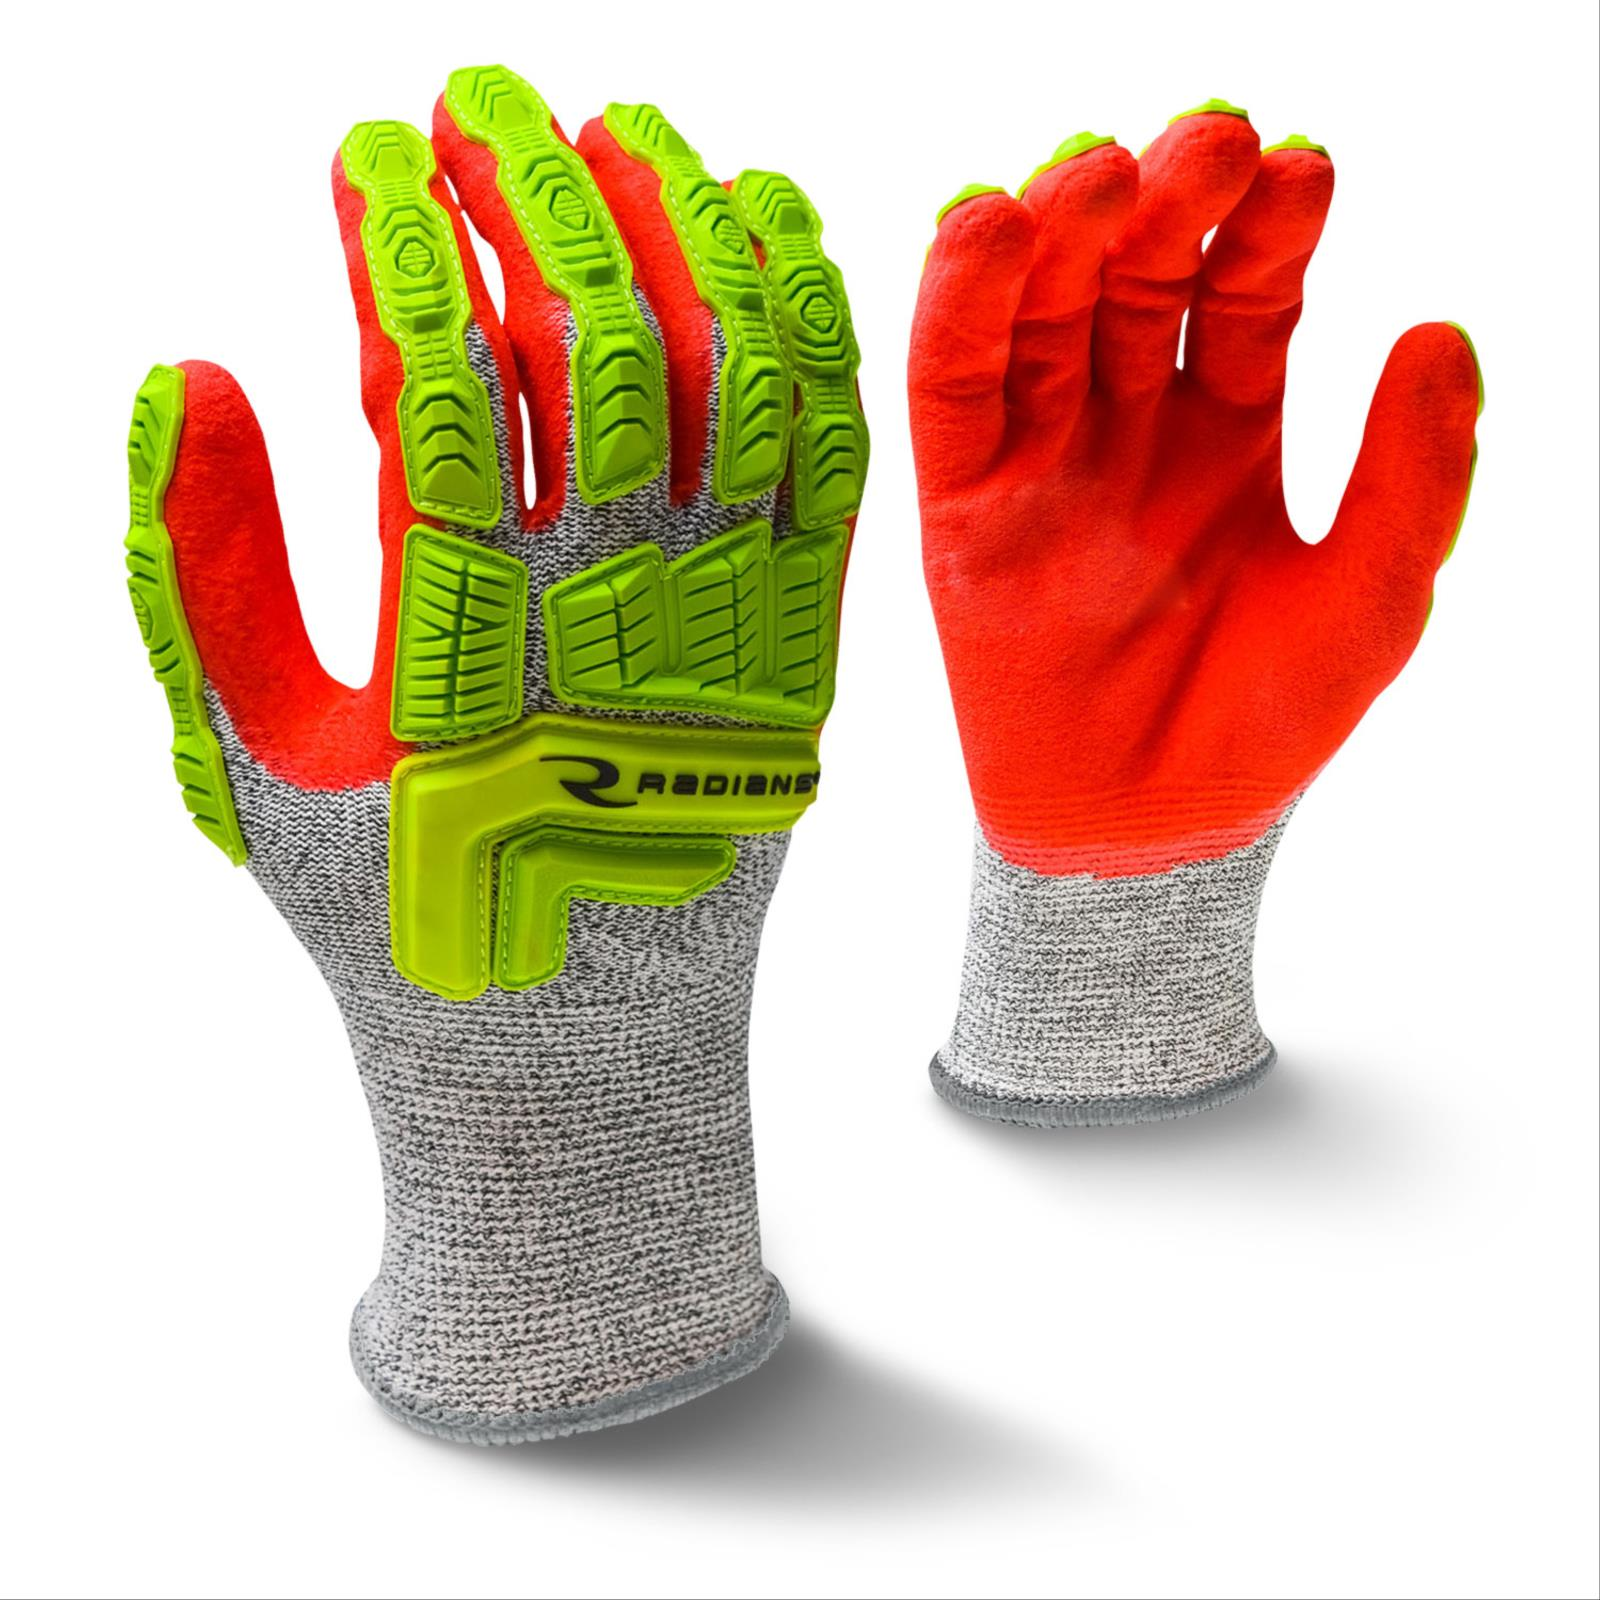 Sandy Foam Nitrile Coated Glove, ANSI Cut Level A5